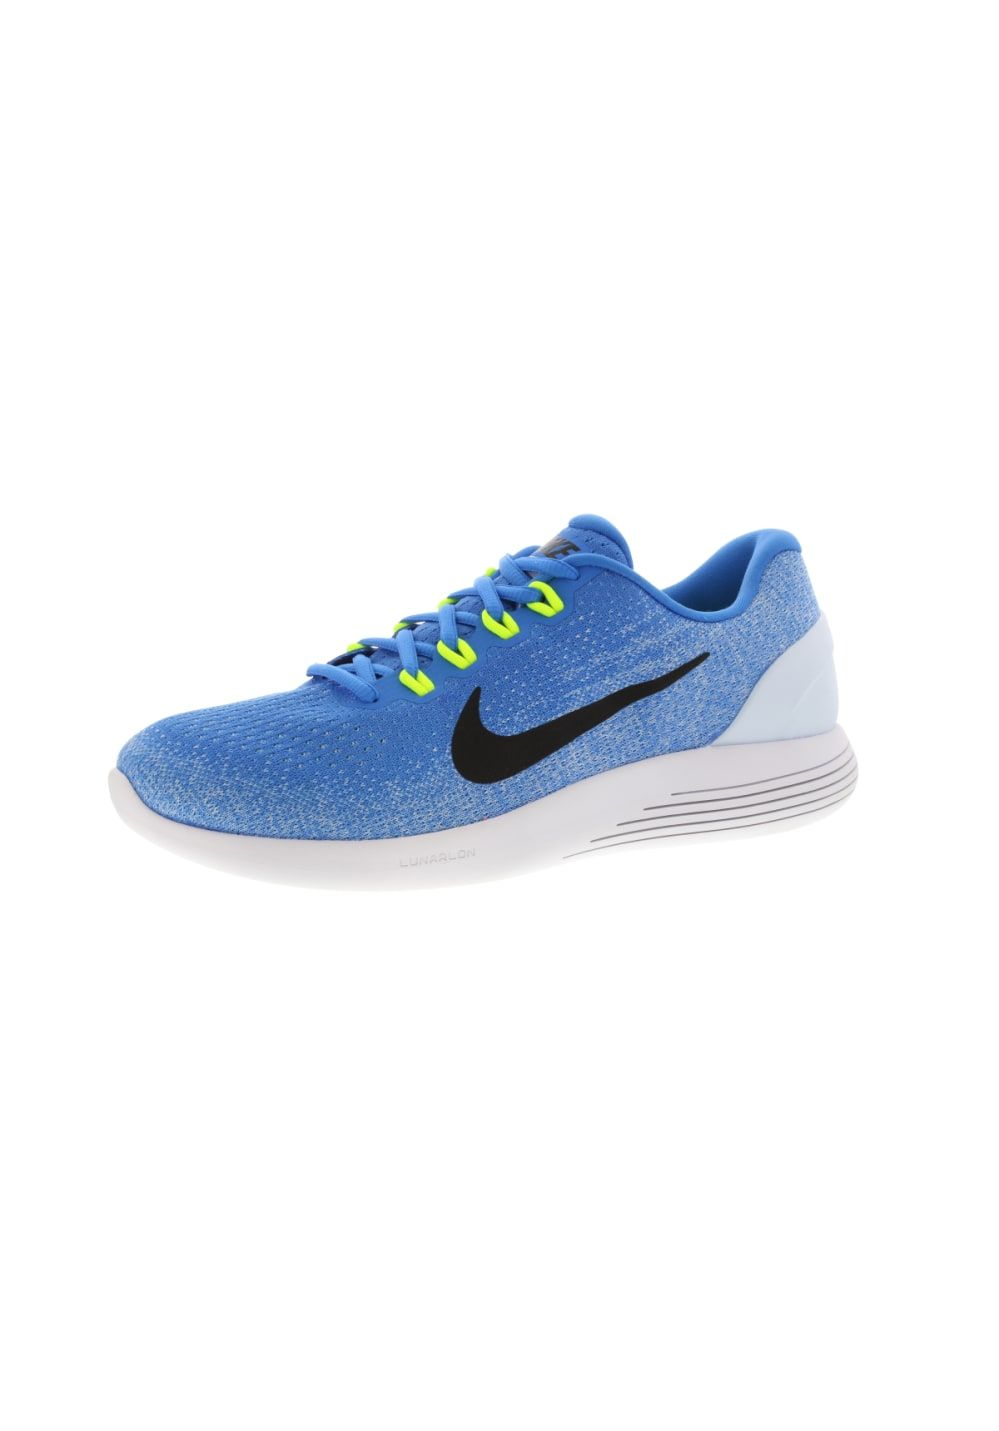 factory authentic 6077c 14dd5 ... reduced nike lunarglide 9 chaussures running pour homme bleu cdc57 00aed